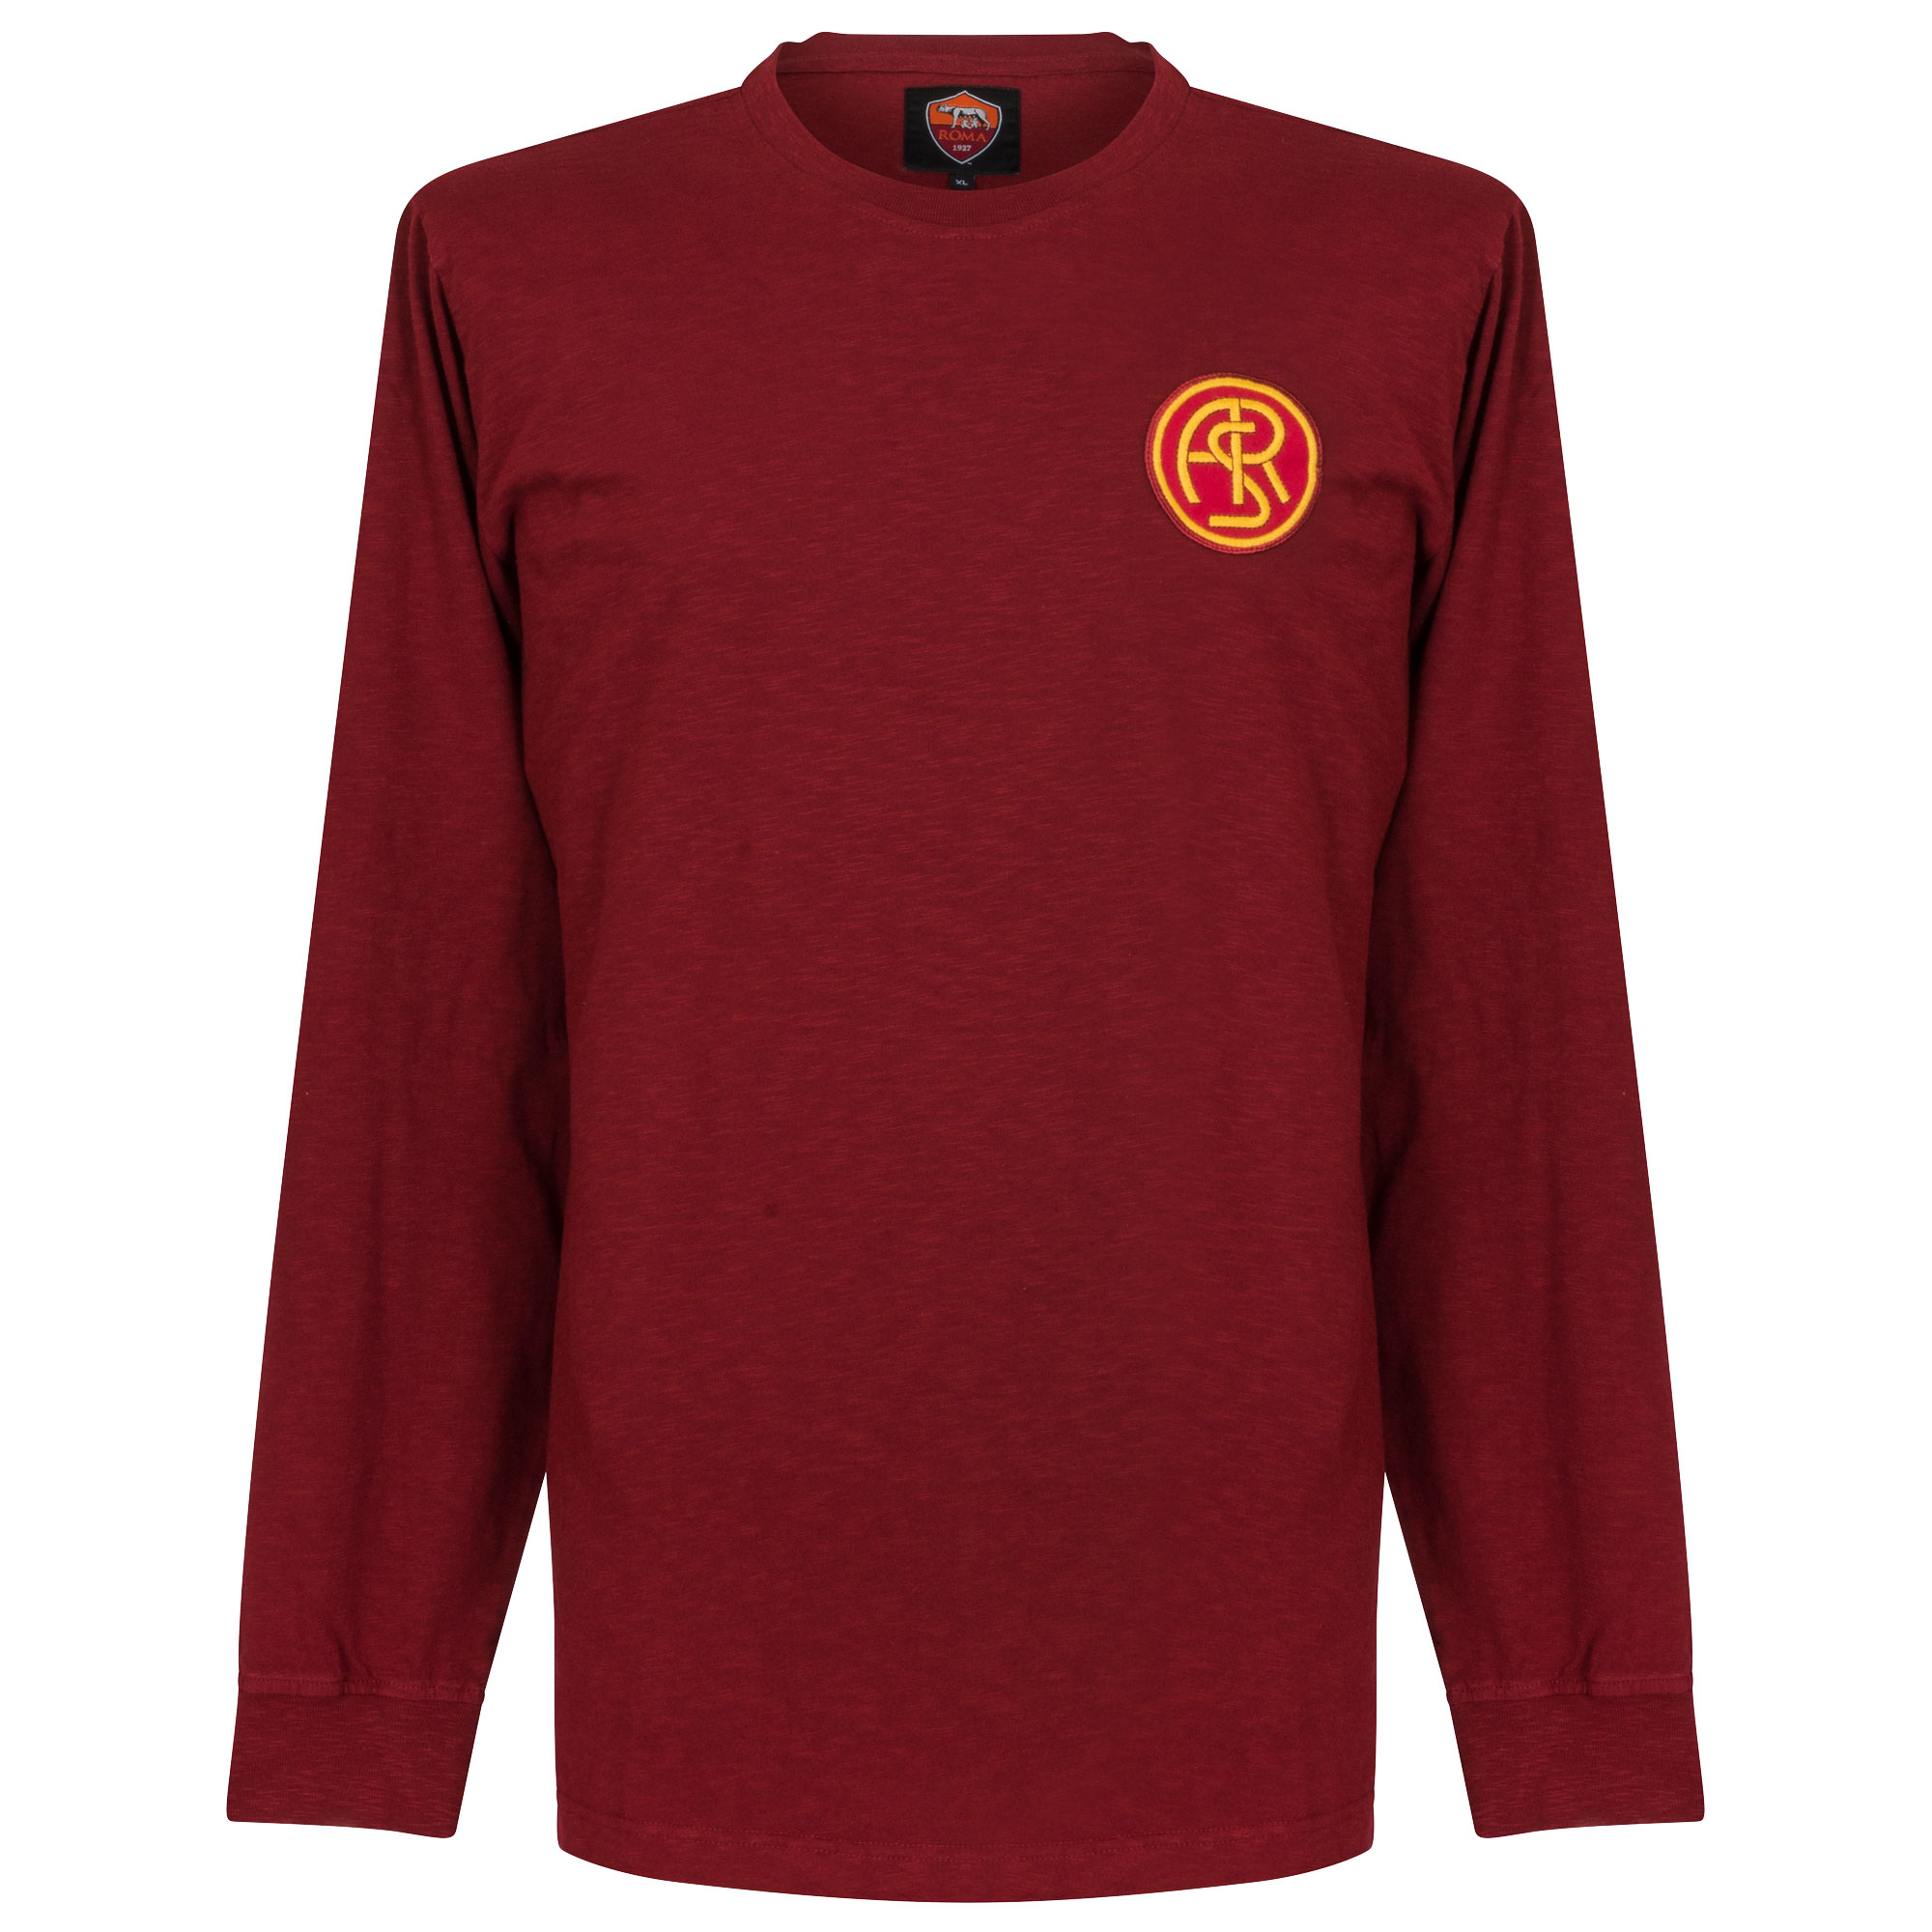 41-42 AS Roma L/S Retro Shirt